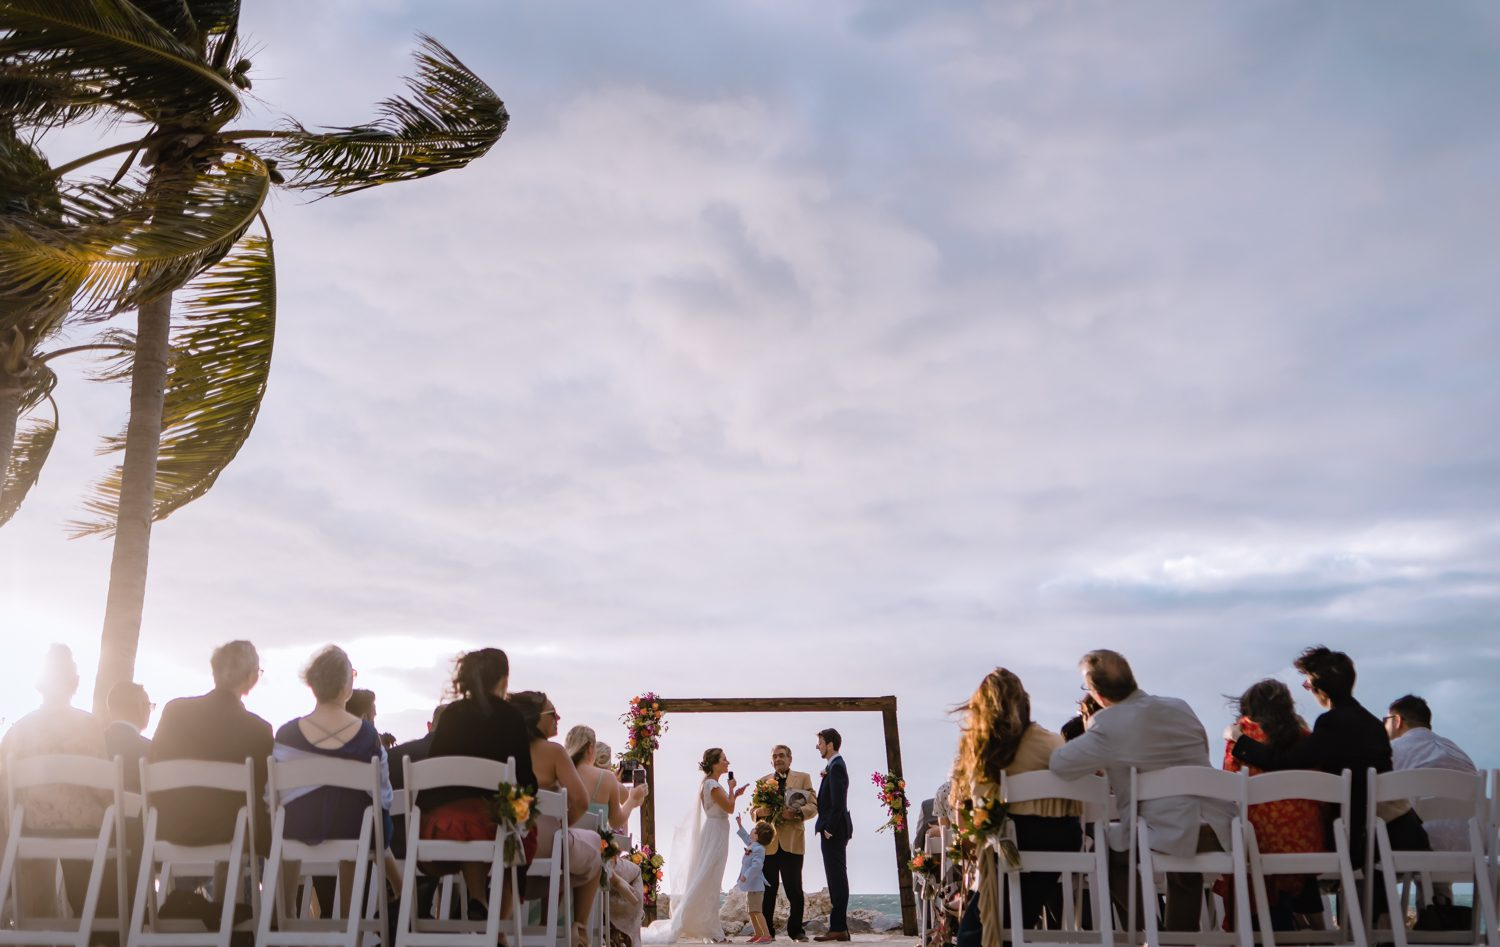 Bride and groom at beach wedding ceremony at fort zachary taylor